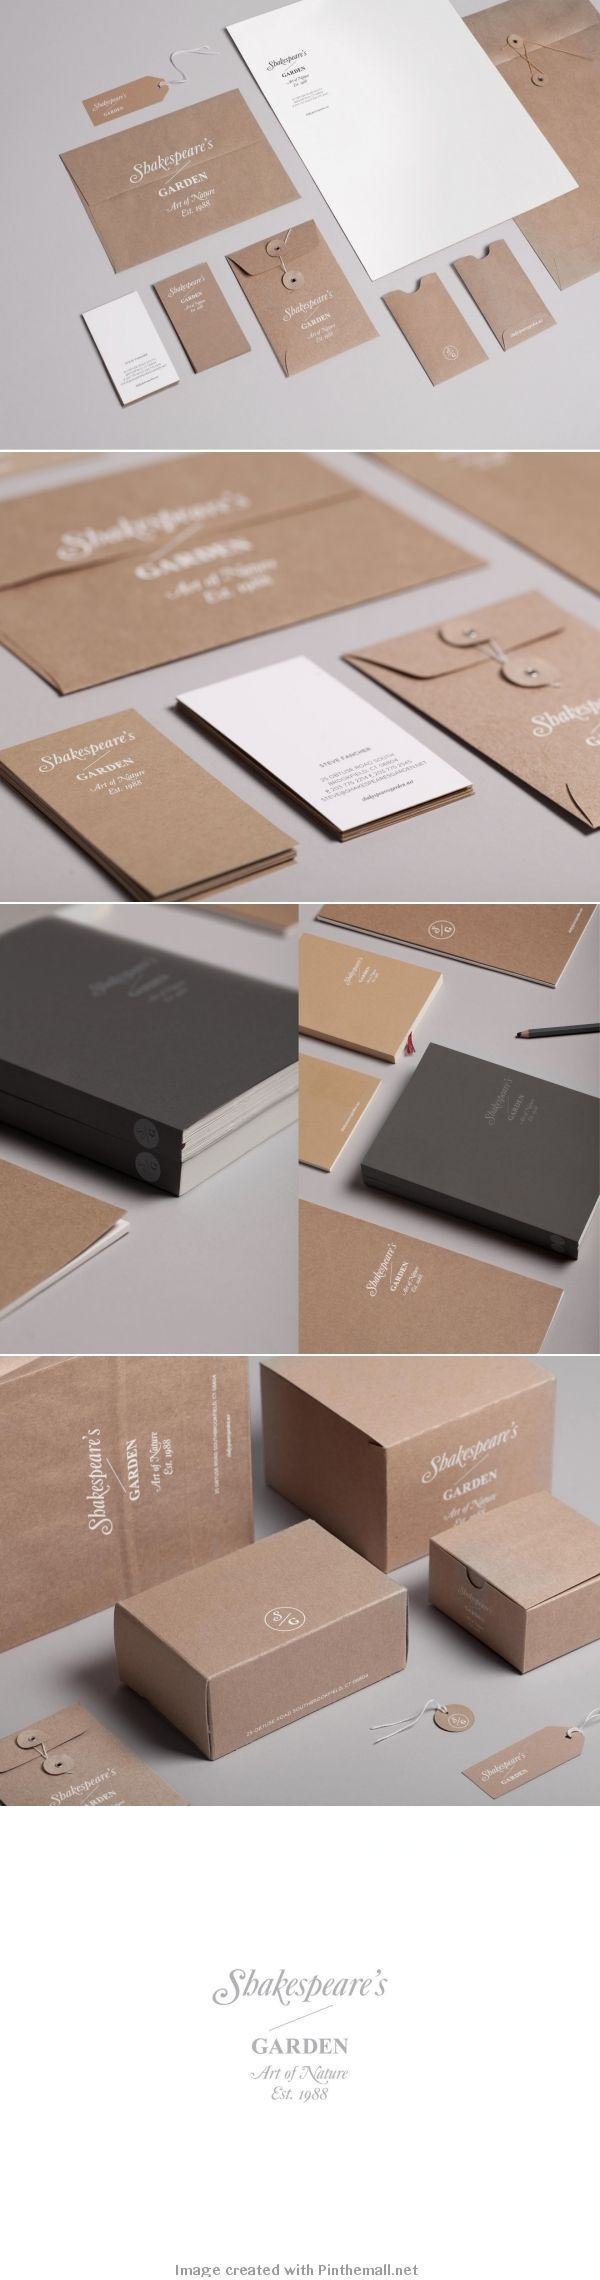 Shakespeare's garden art of nature logo corporate branding visual graphic identity kraft paper design business card label packaging box white print